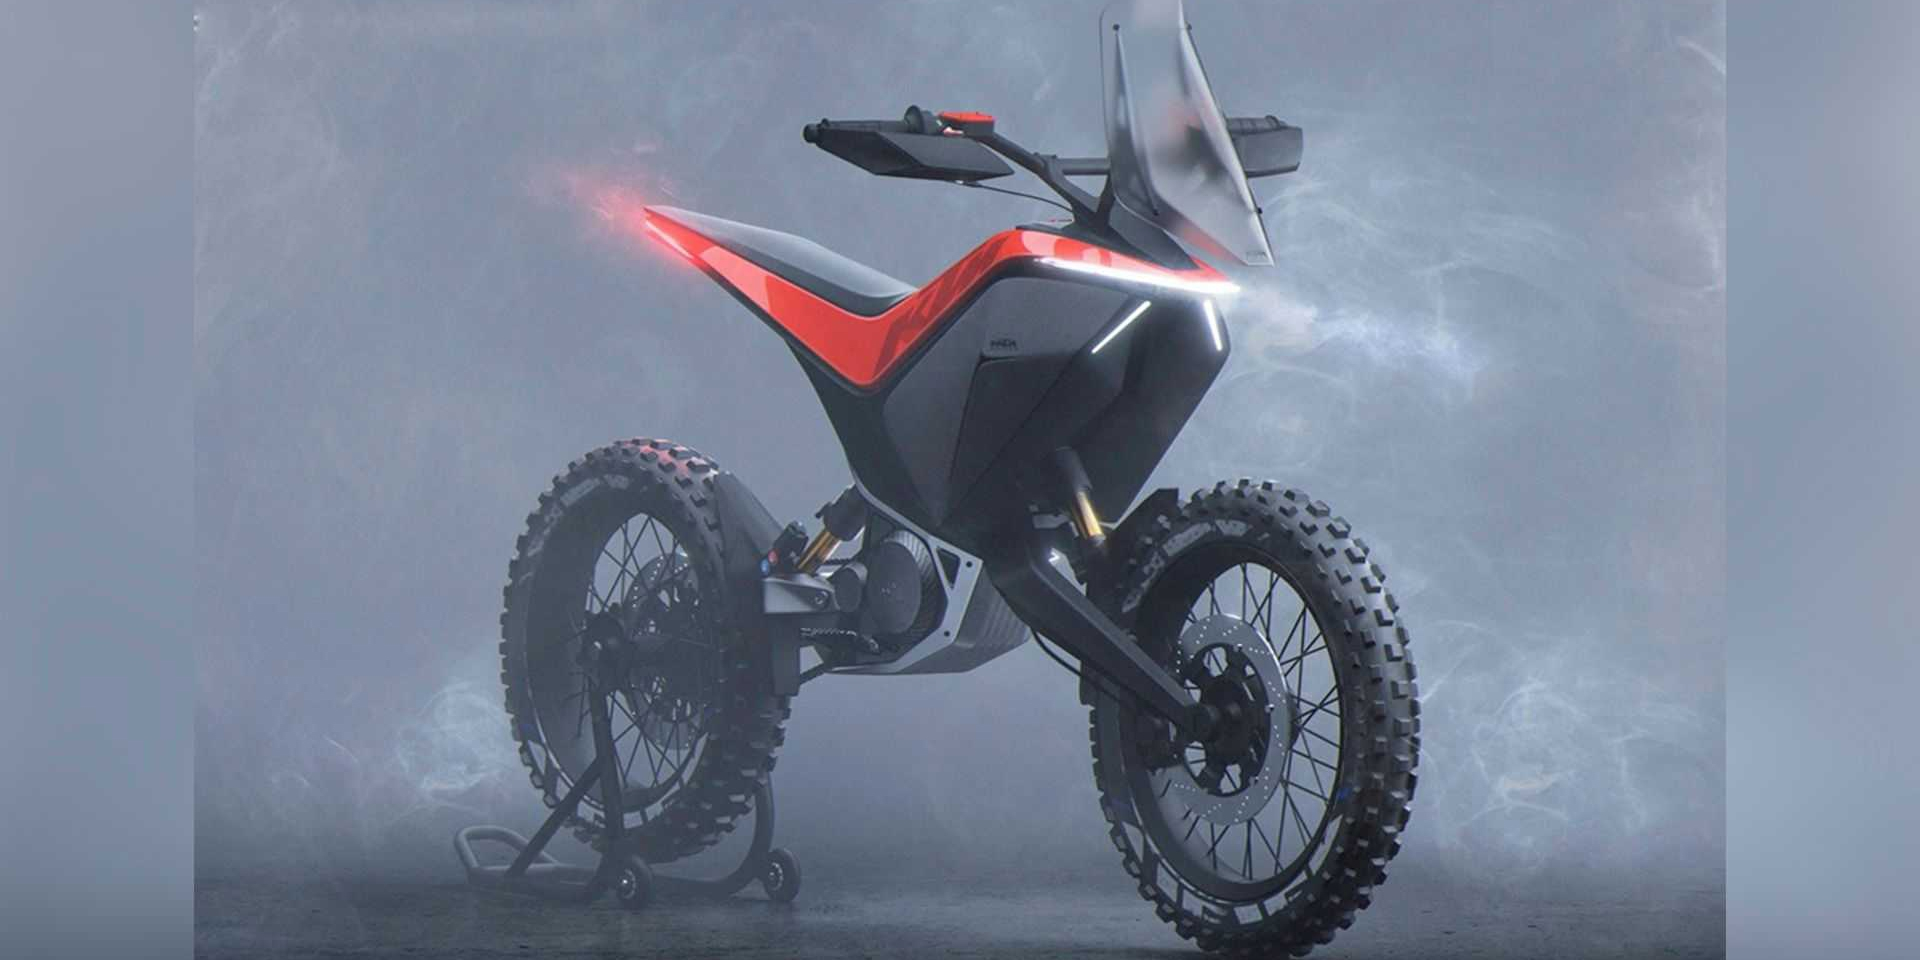 預算無上限的野心 ! KTM Light Adventure Concept - Julien Lecreux